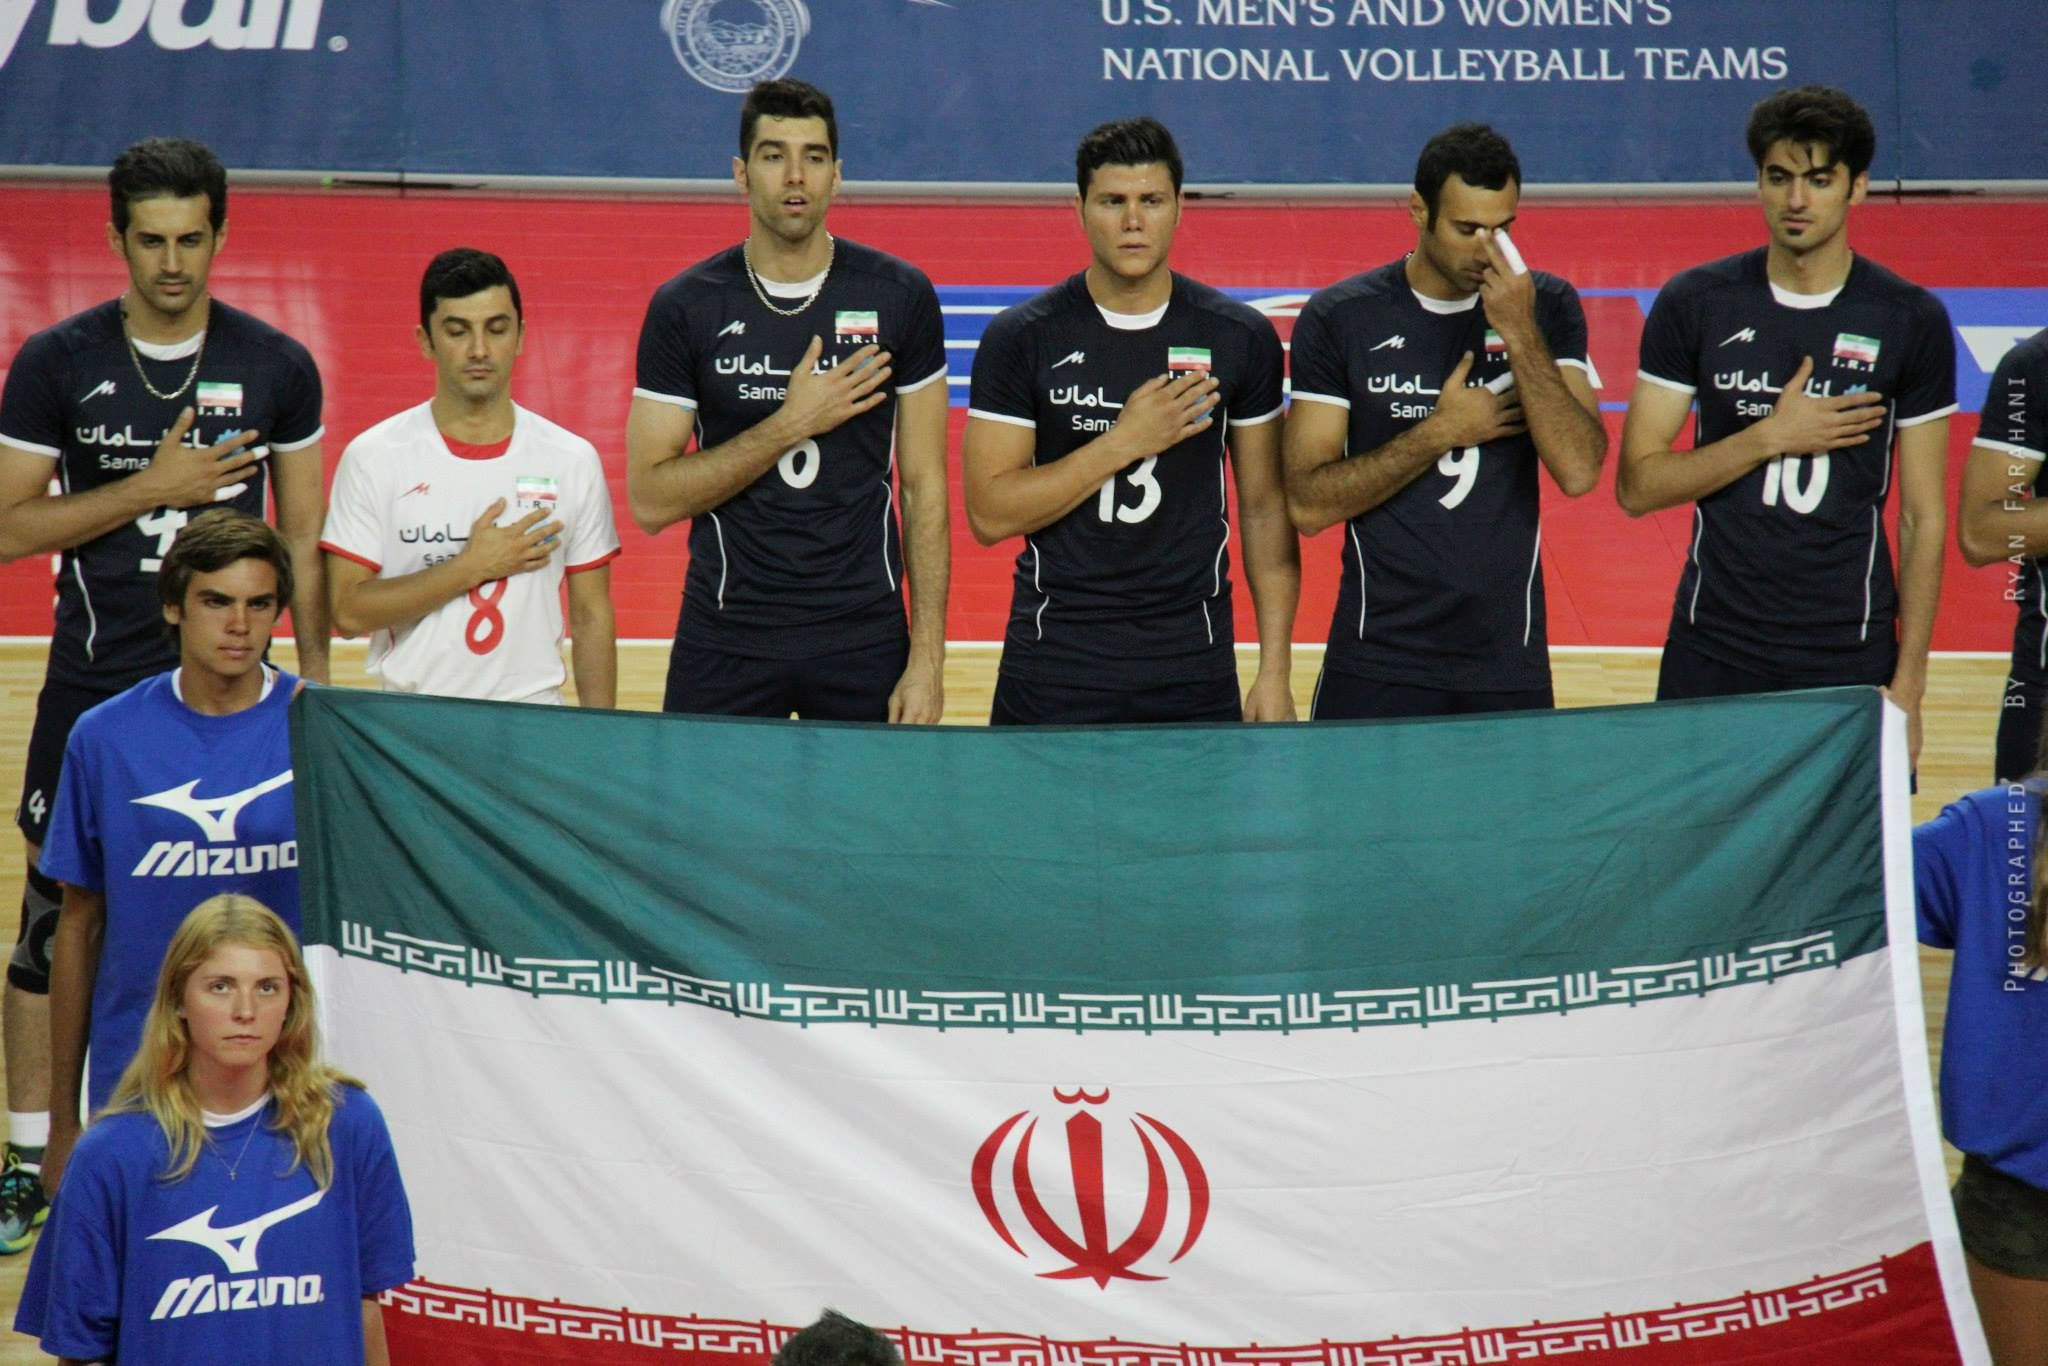 Usa Vs Iran Fivb Live Stream Time Date Team Squad Prediction Preview Details Watch Online Http Www Tsmplug Com V Volleyball Team Volleyball Teams